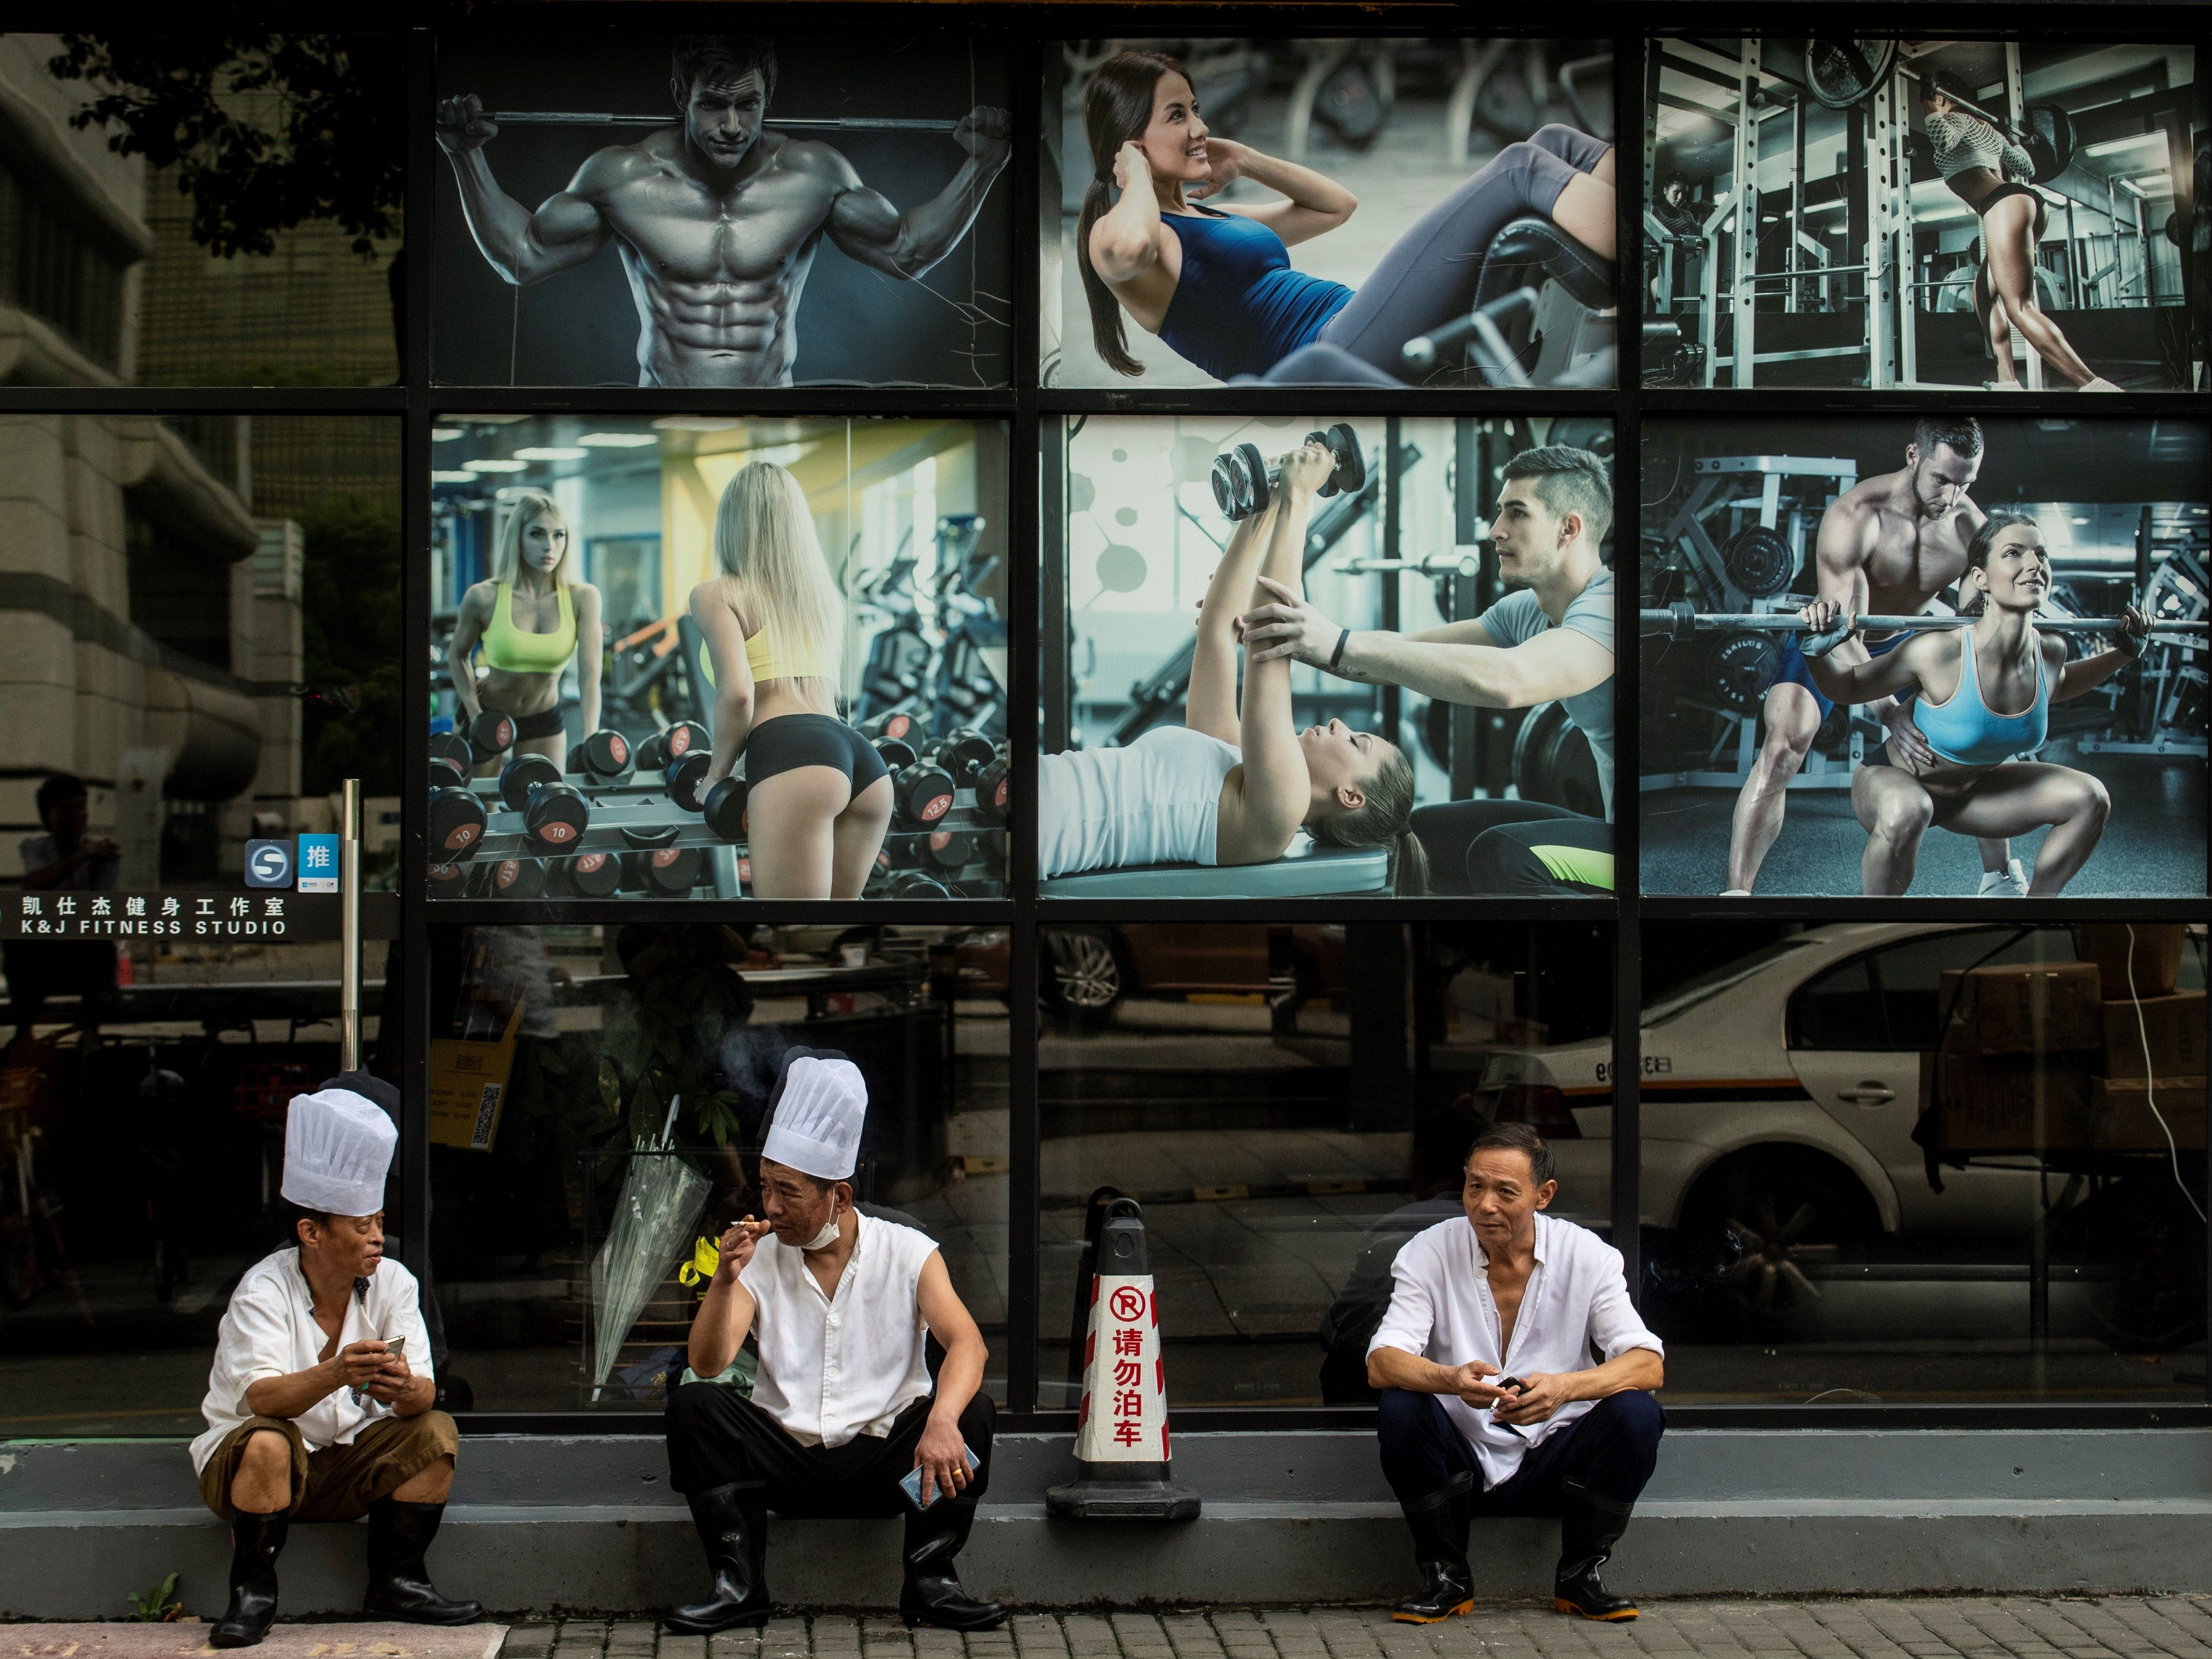 Three restaurant chefs take a break in front of a fitness studio in downtown Shanghai on September 4, 2018.